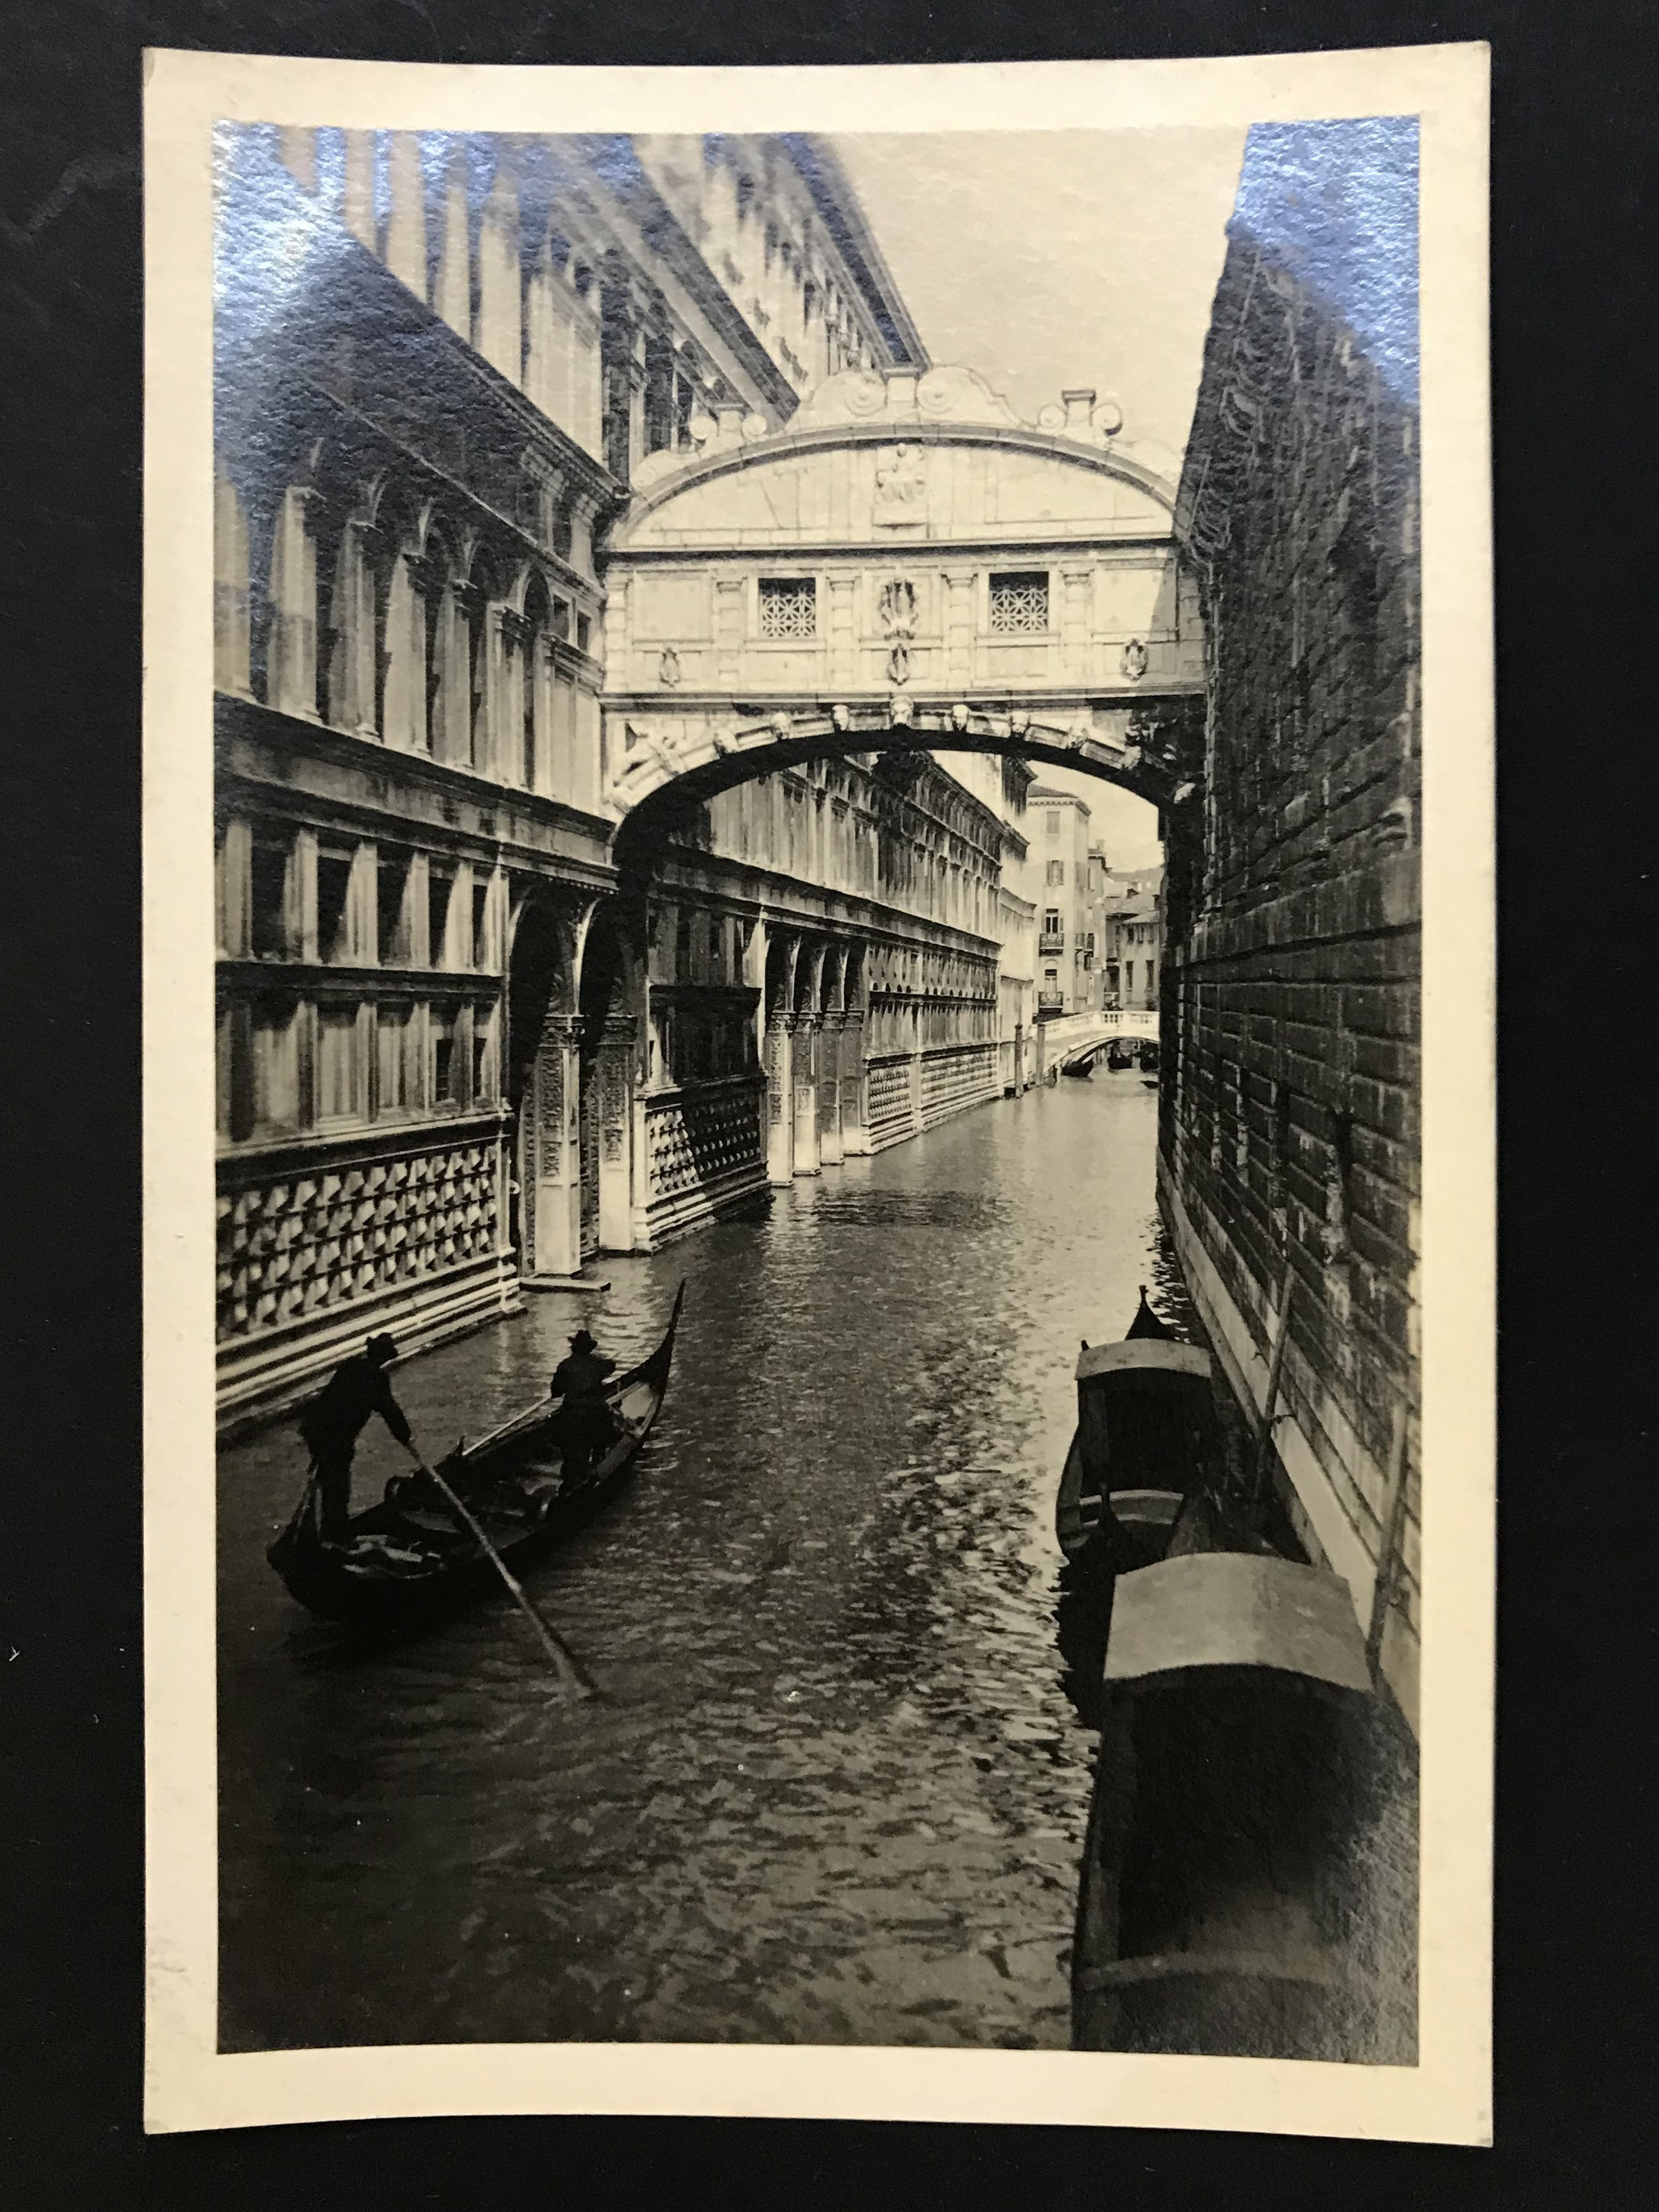 SELECTION OF VENICE RELATED POSTCARDS - Image 19 of 53